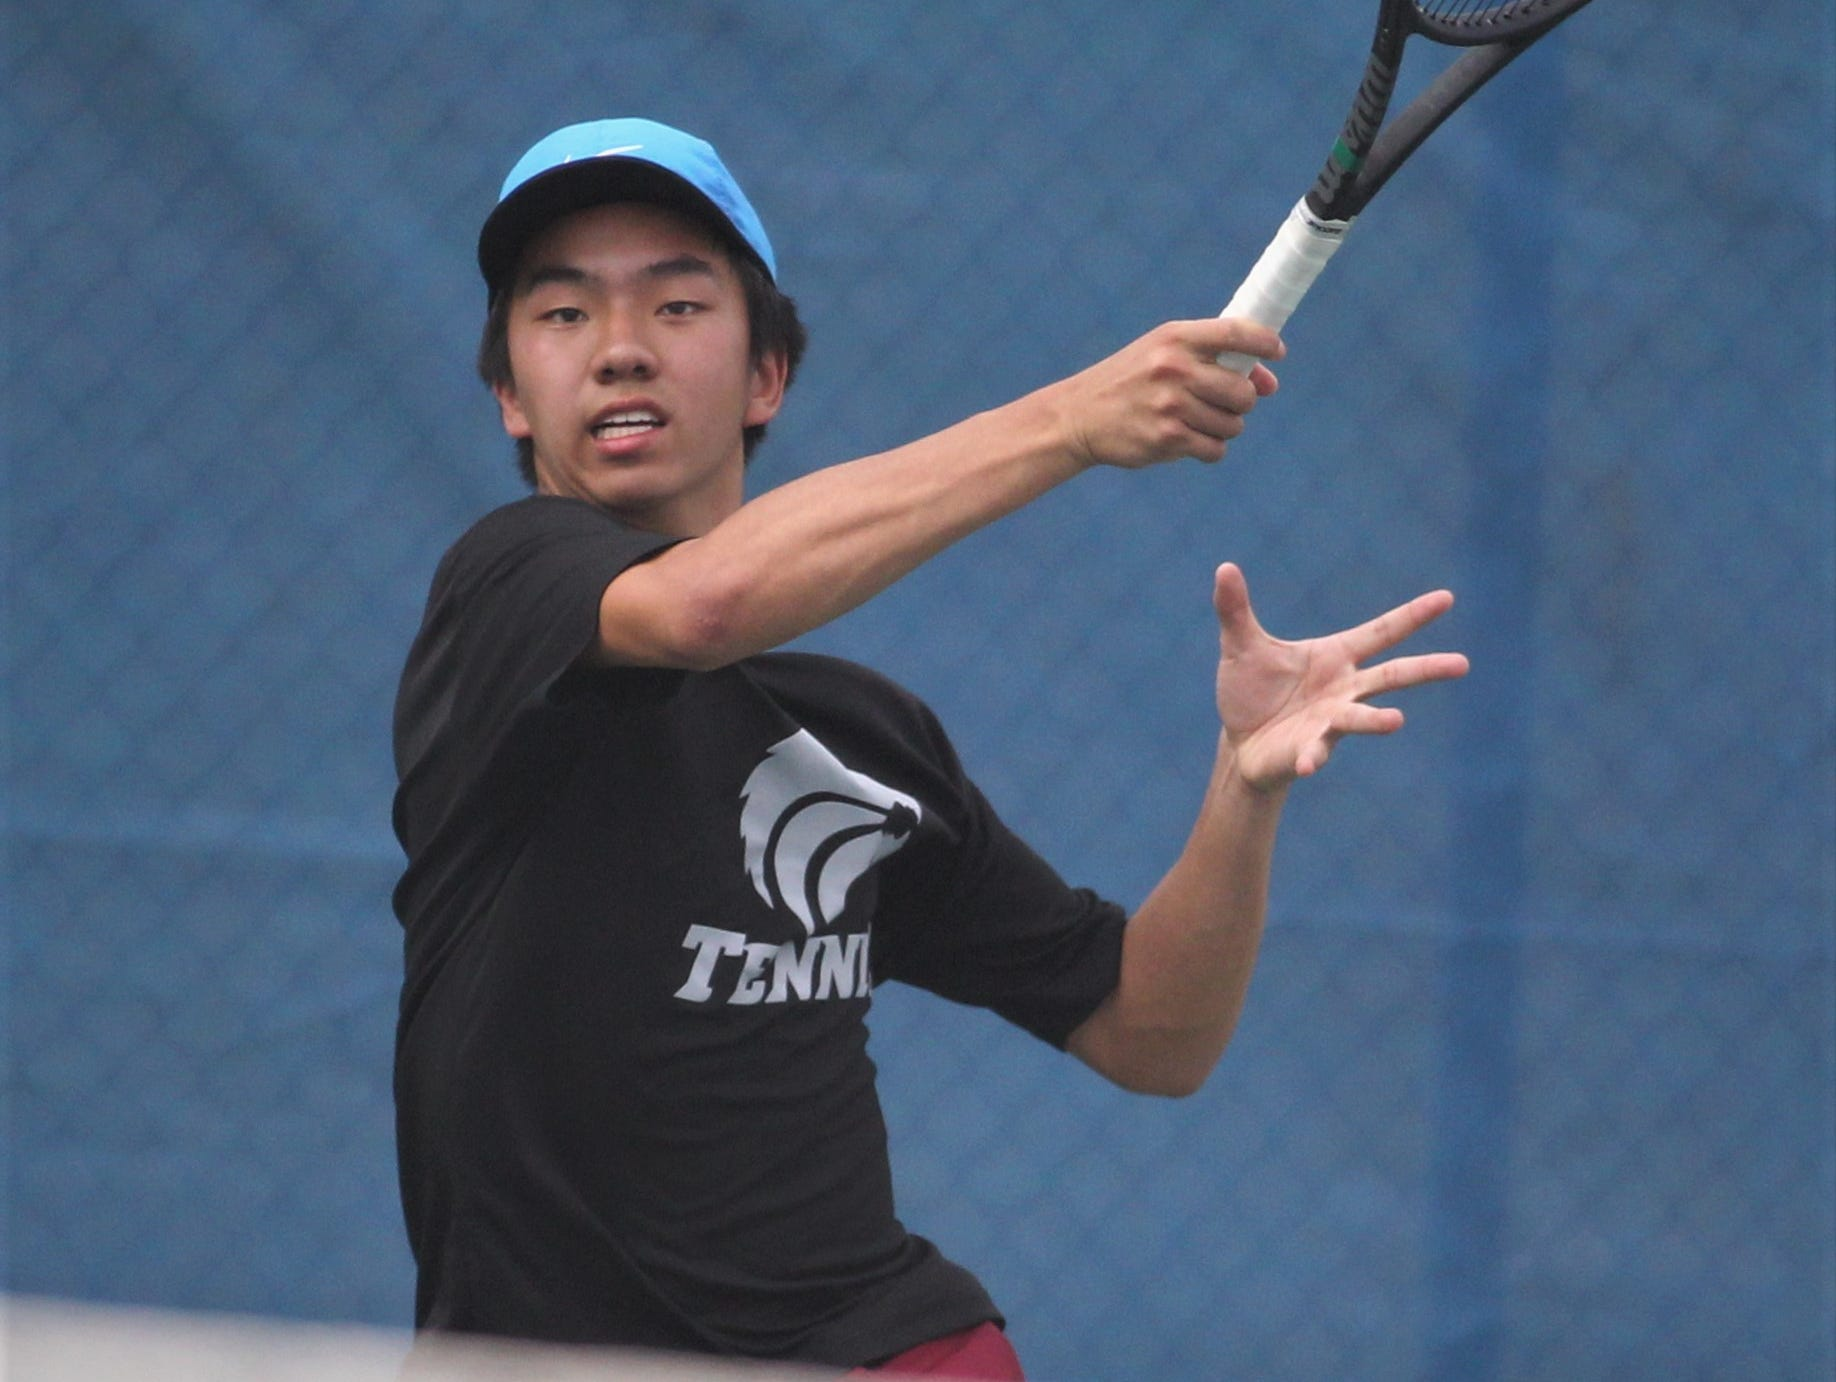 Chiles freshman Brighton Jiang plays during the high school boys and girls city tennis tournament at Tom Brown Park on Thursday, March 14, 2019.